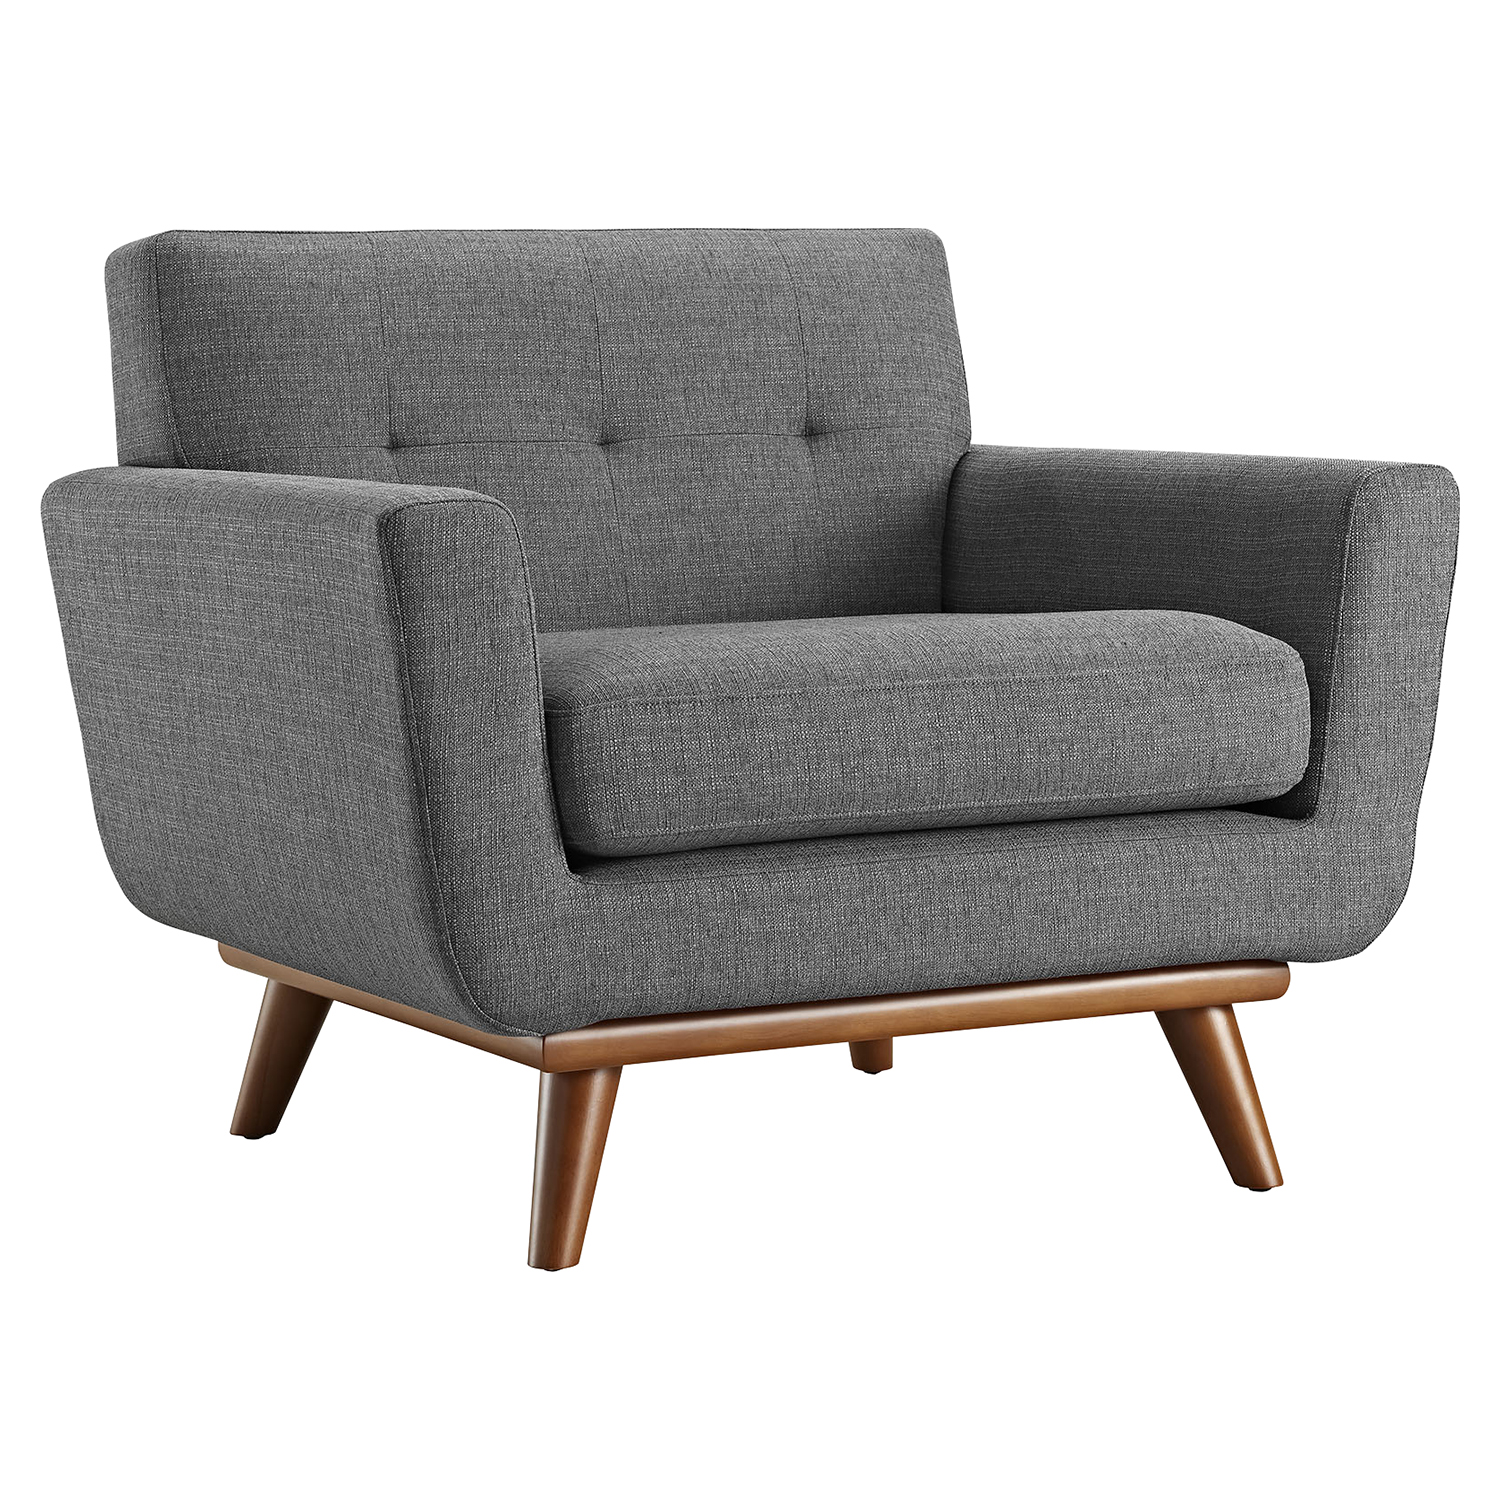 Engage Upholstered Armchair - Tufted - EEI-1178